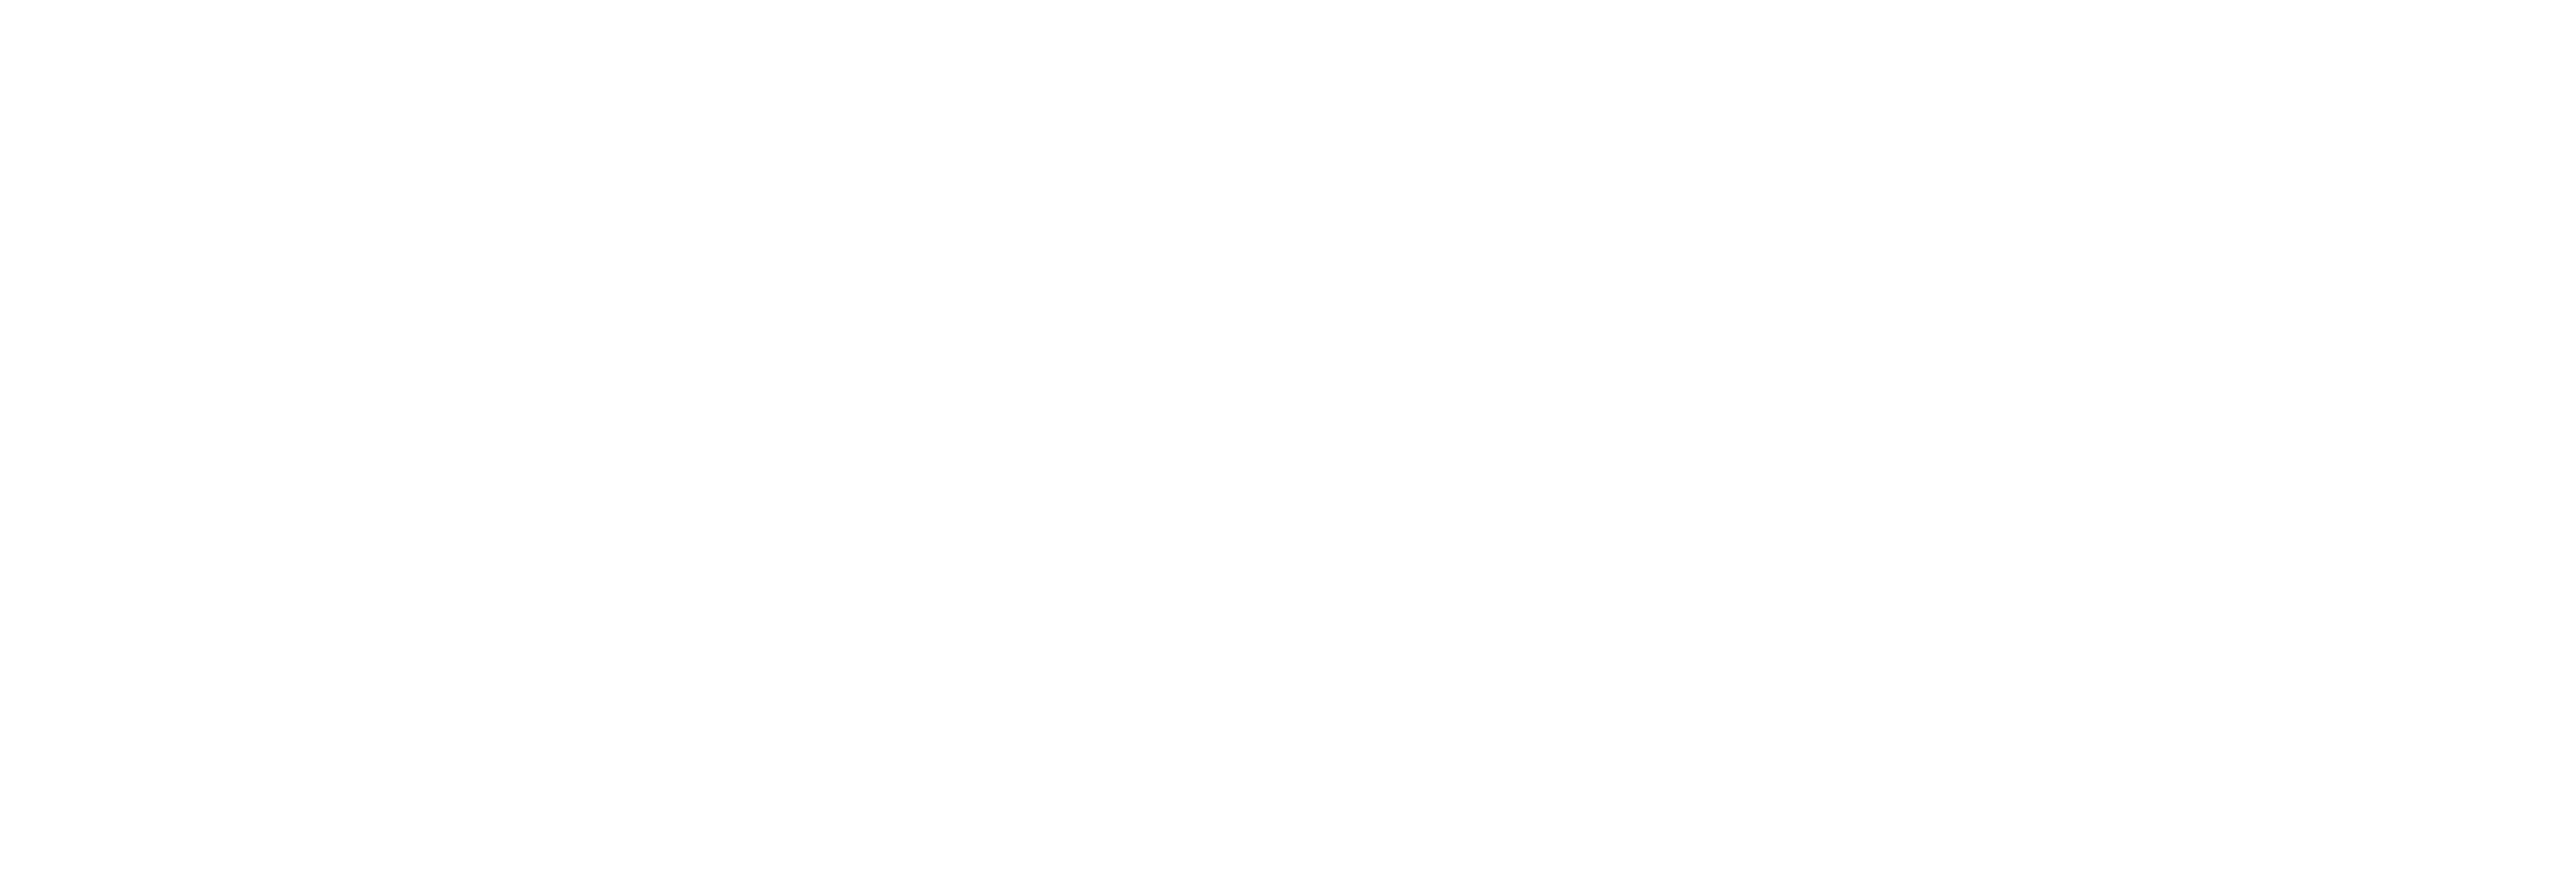 The Pionears | Freshmade Skincare Products